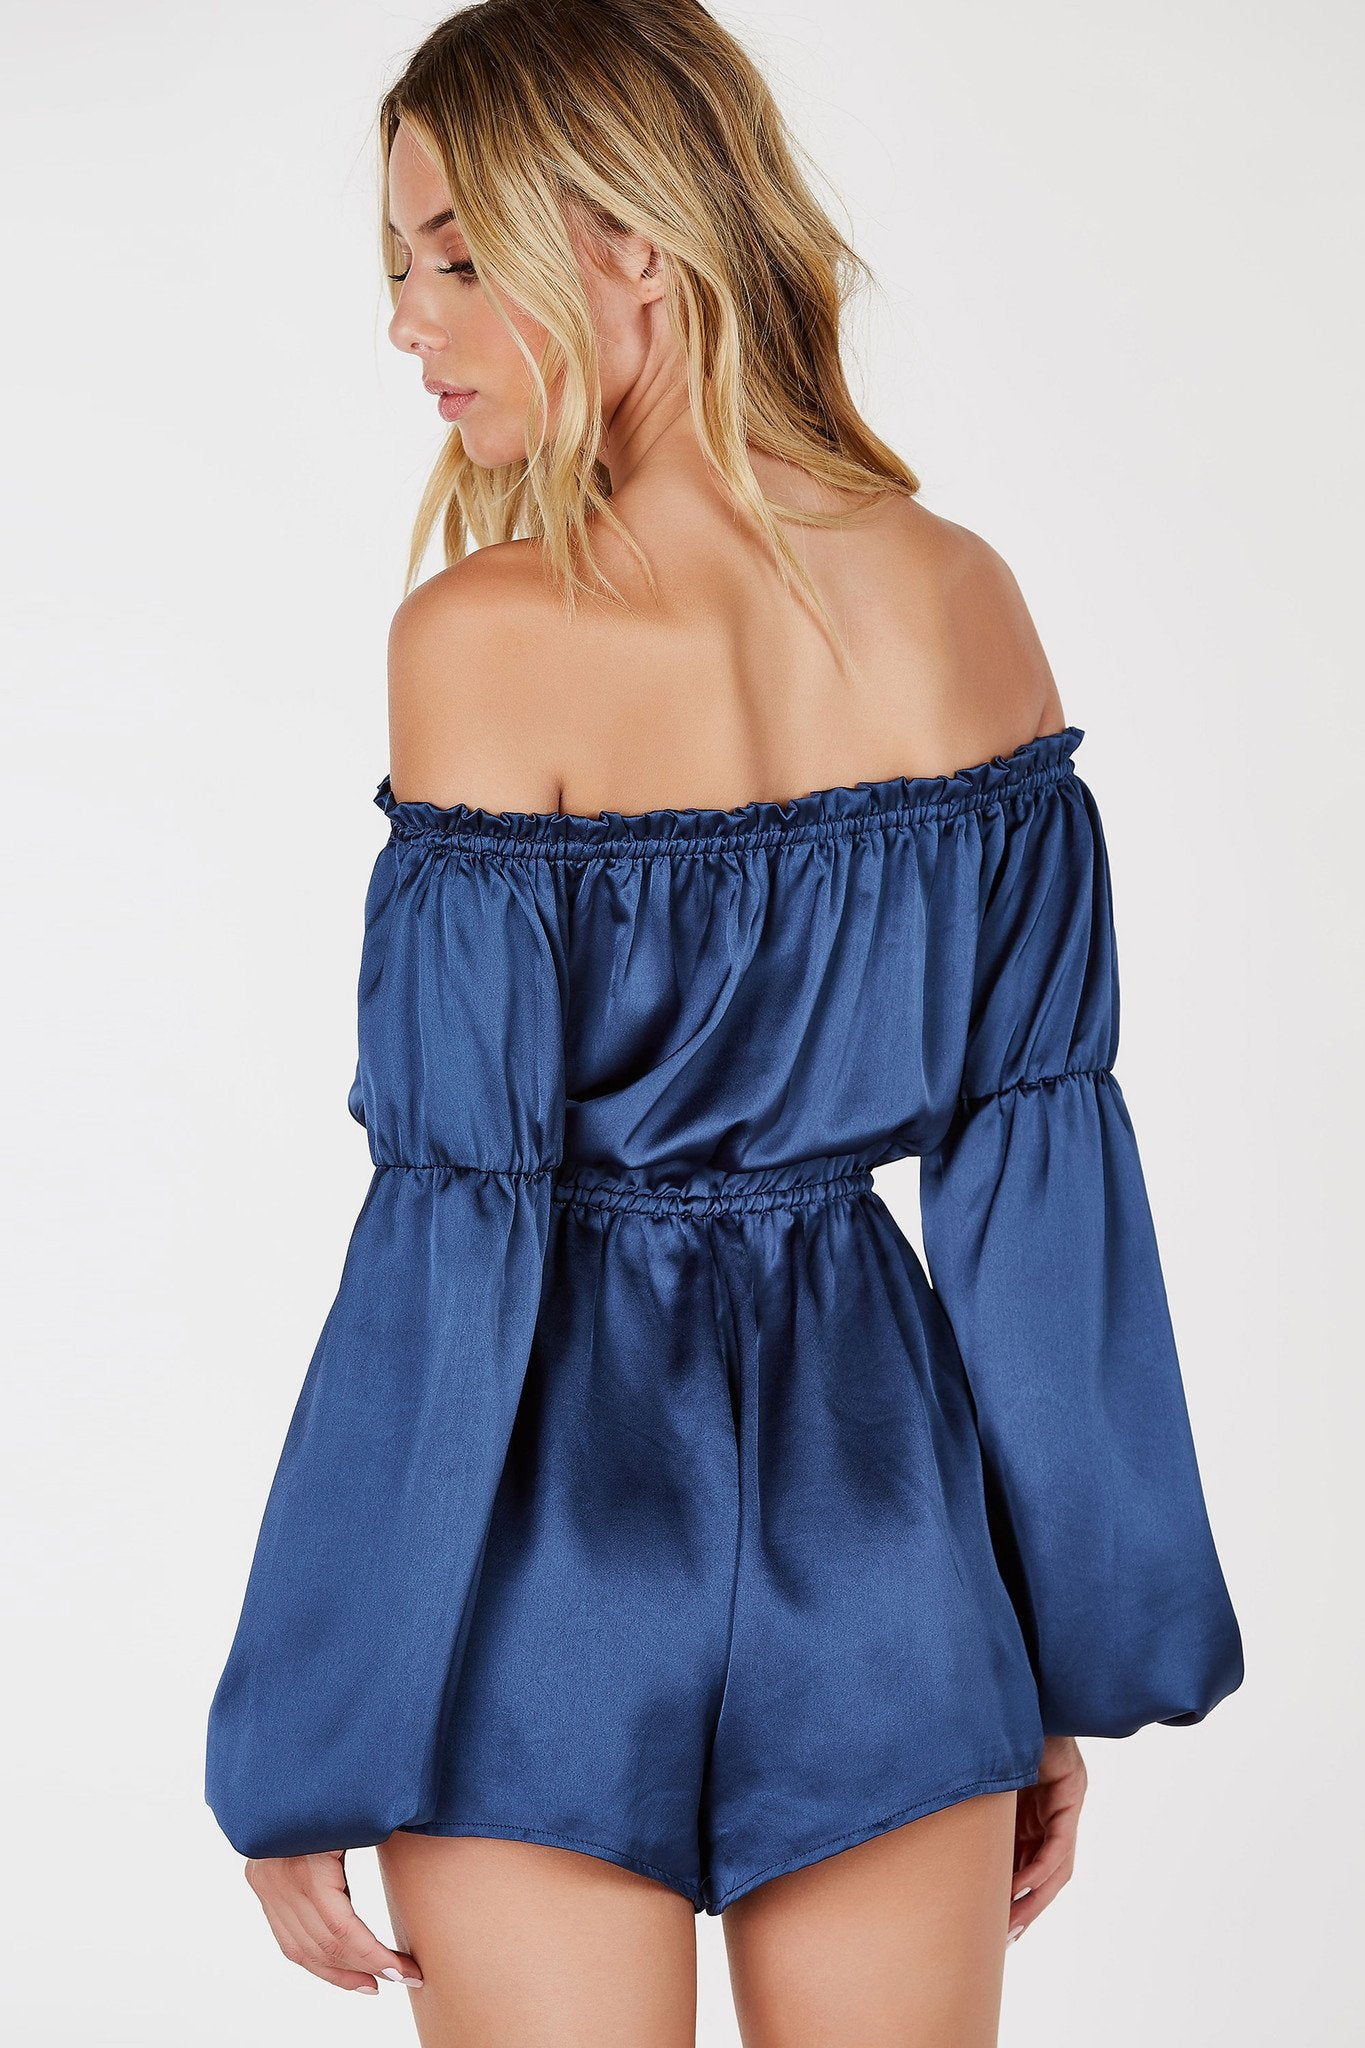 A lovely off shoulder romper with a gorgeous satin finish. Flirty ruffle detailing on top with a bold cut out in front. Features ties with chic tassels at ends for added detail. Elasticized at the waist to accentuate your curves.